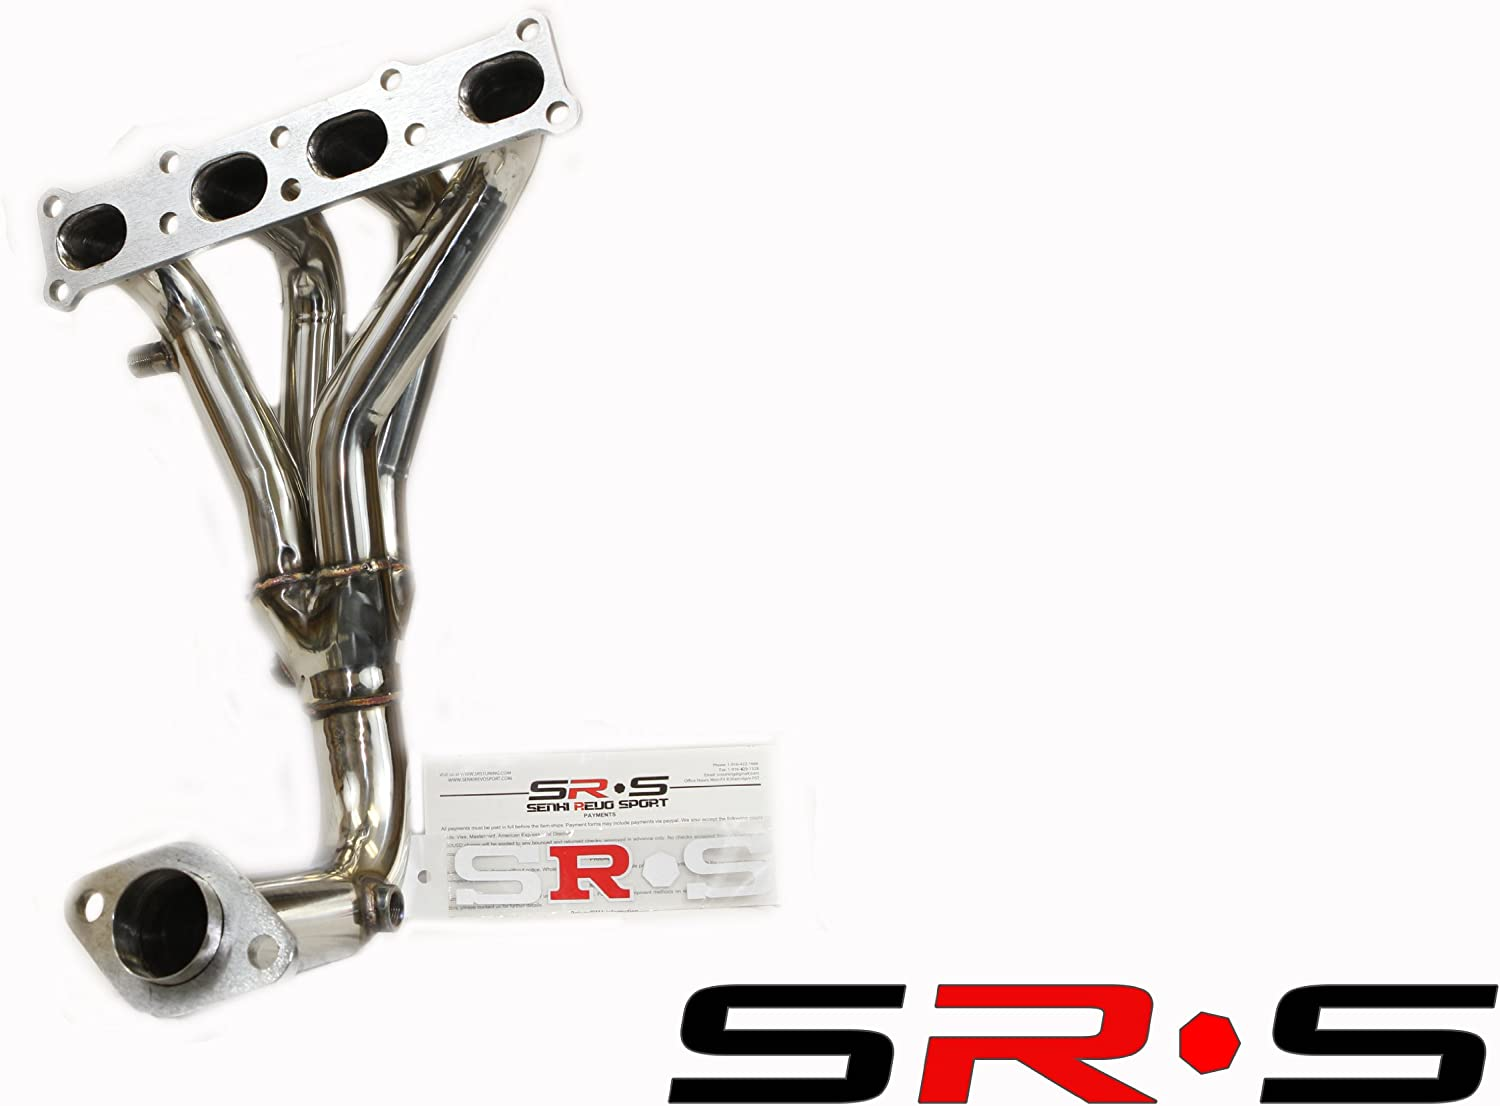 SRS T-304 Stainless Steel Header For Mazda Protege 5 2.0L